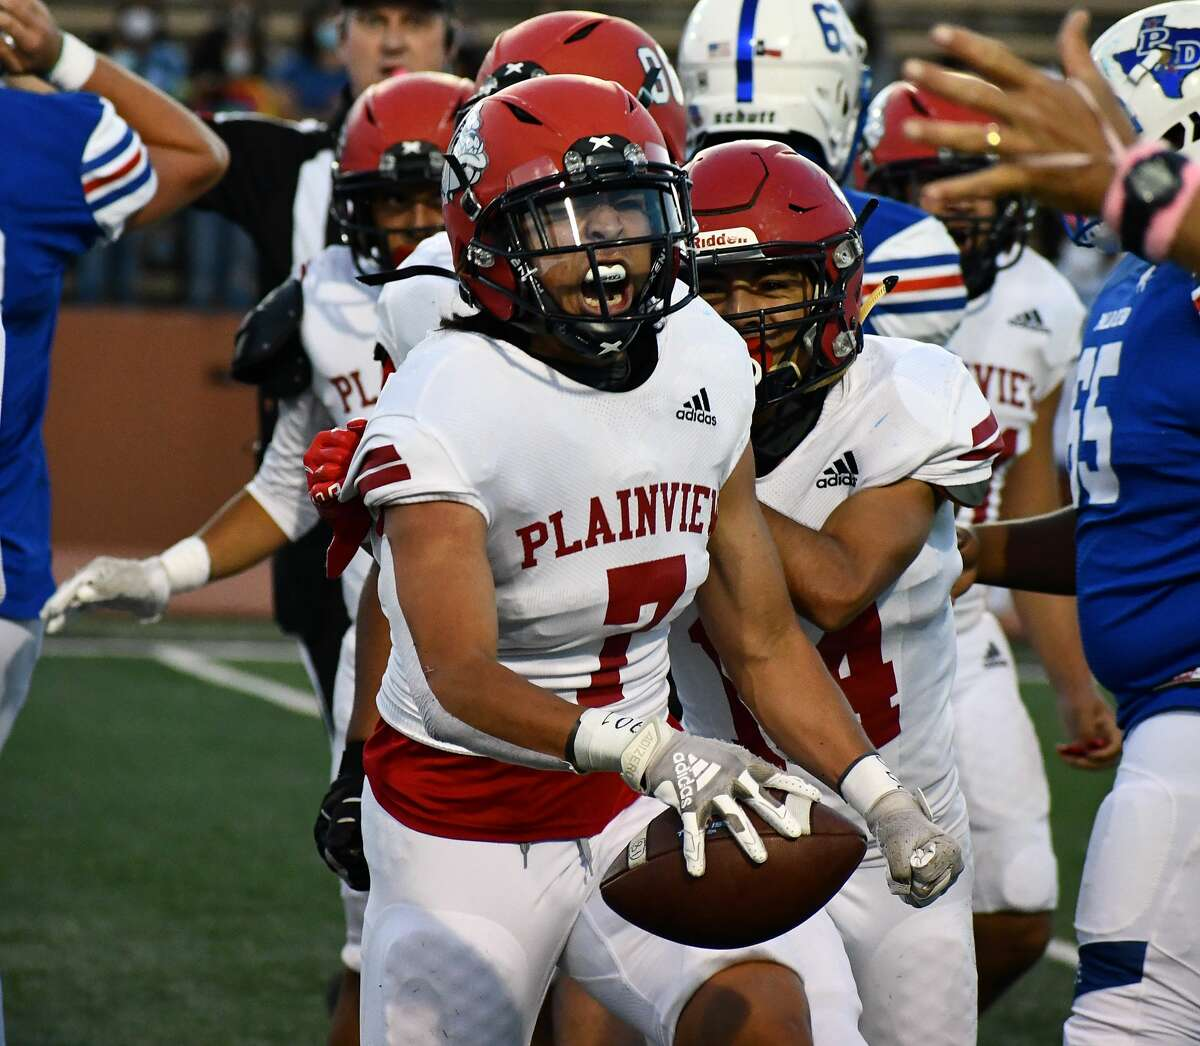 Plainview's Angel Medina celebrates his fumble recovery during a non-district high school football game against Amarillo Palo Duro on Oct. 1 in Dick Bivins Stadium in Palo Duro. Medina and the defense will get a new challenge when the Bulldogs host Lubbock for homecoming.